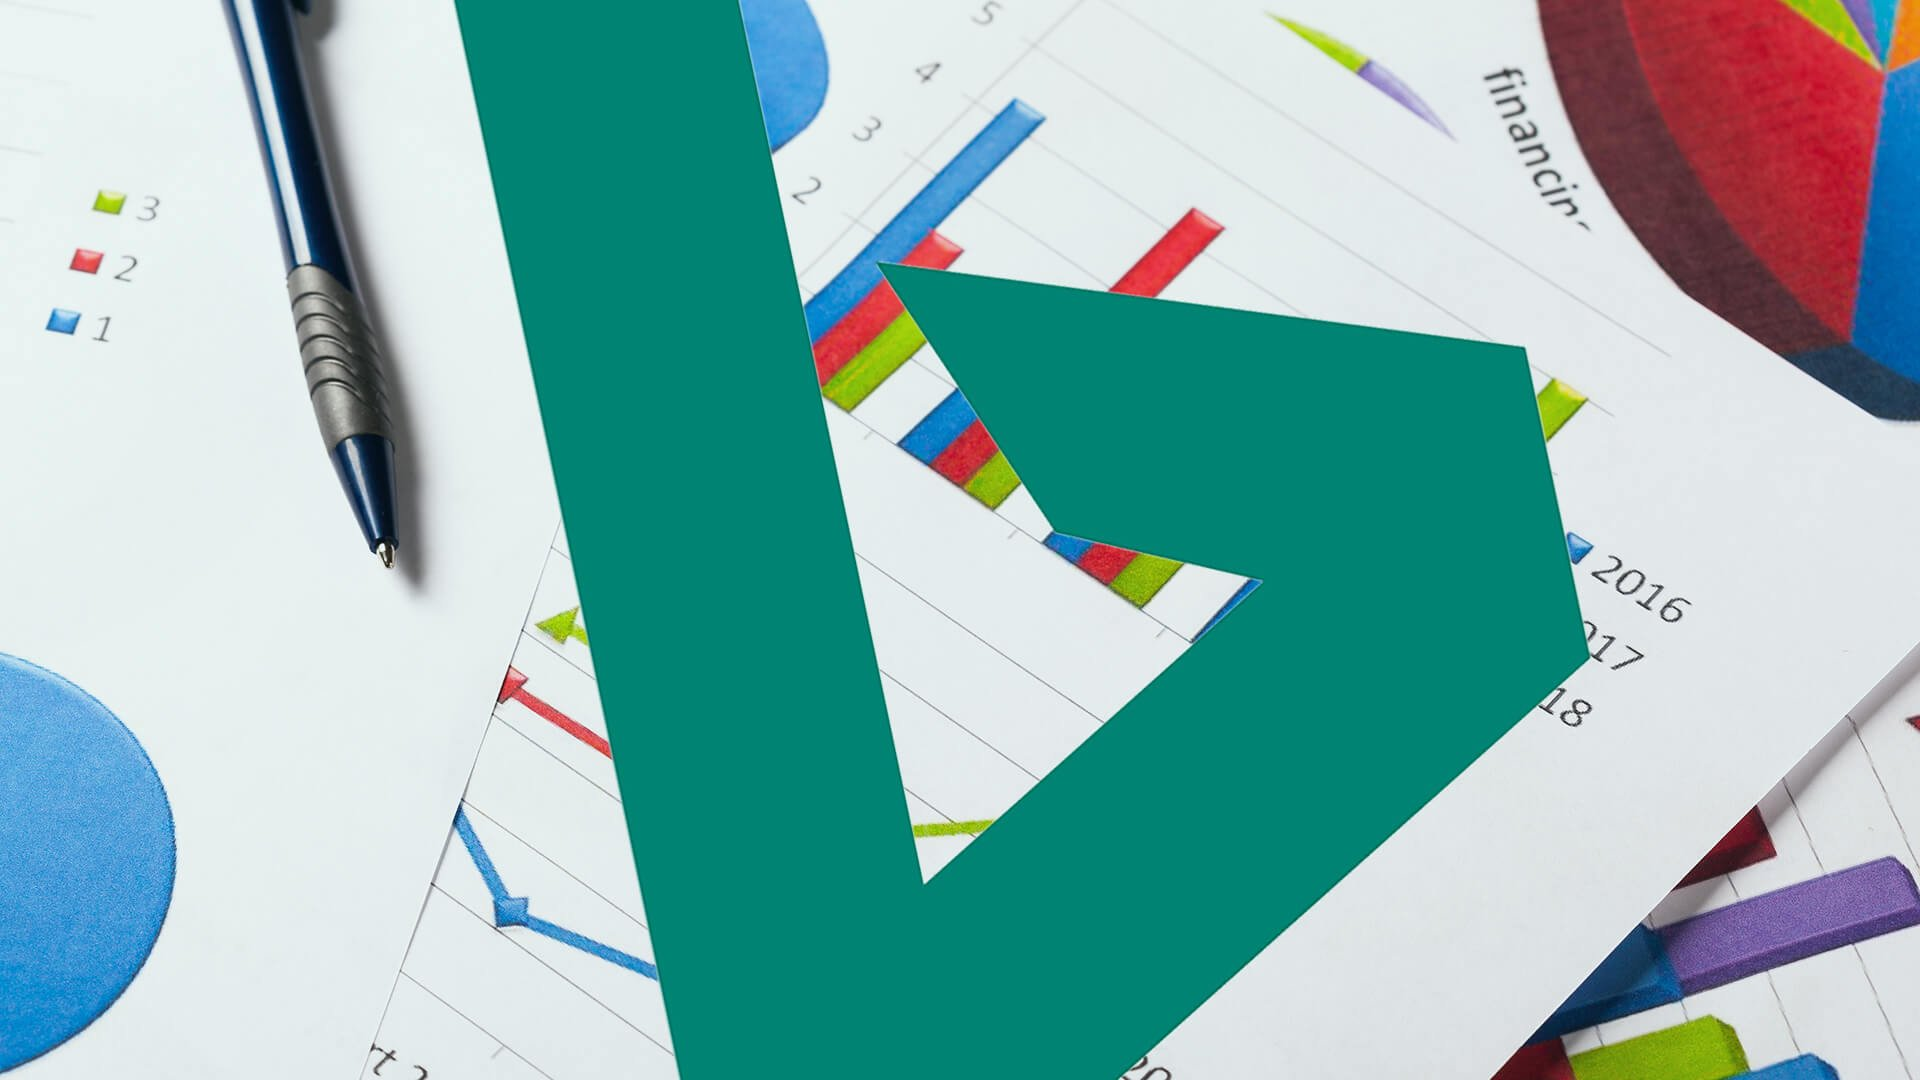 Bing Ads rolling out offline conversion imports to capture impact of ads on offline sales